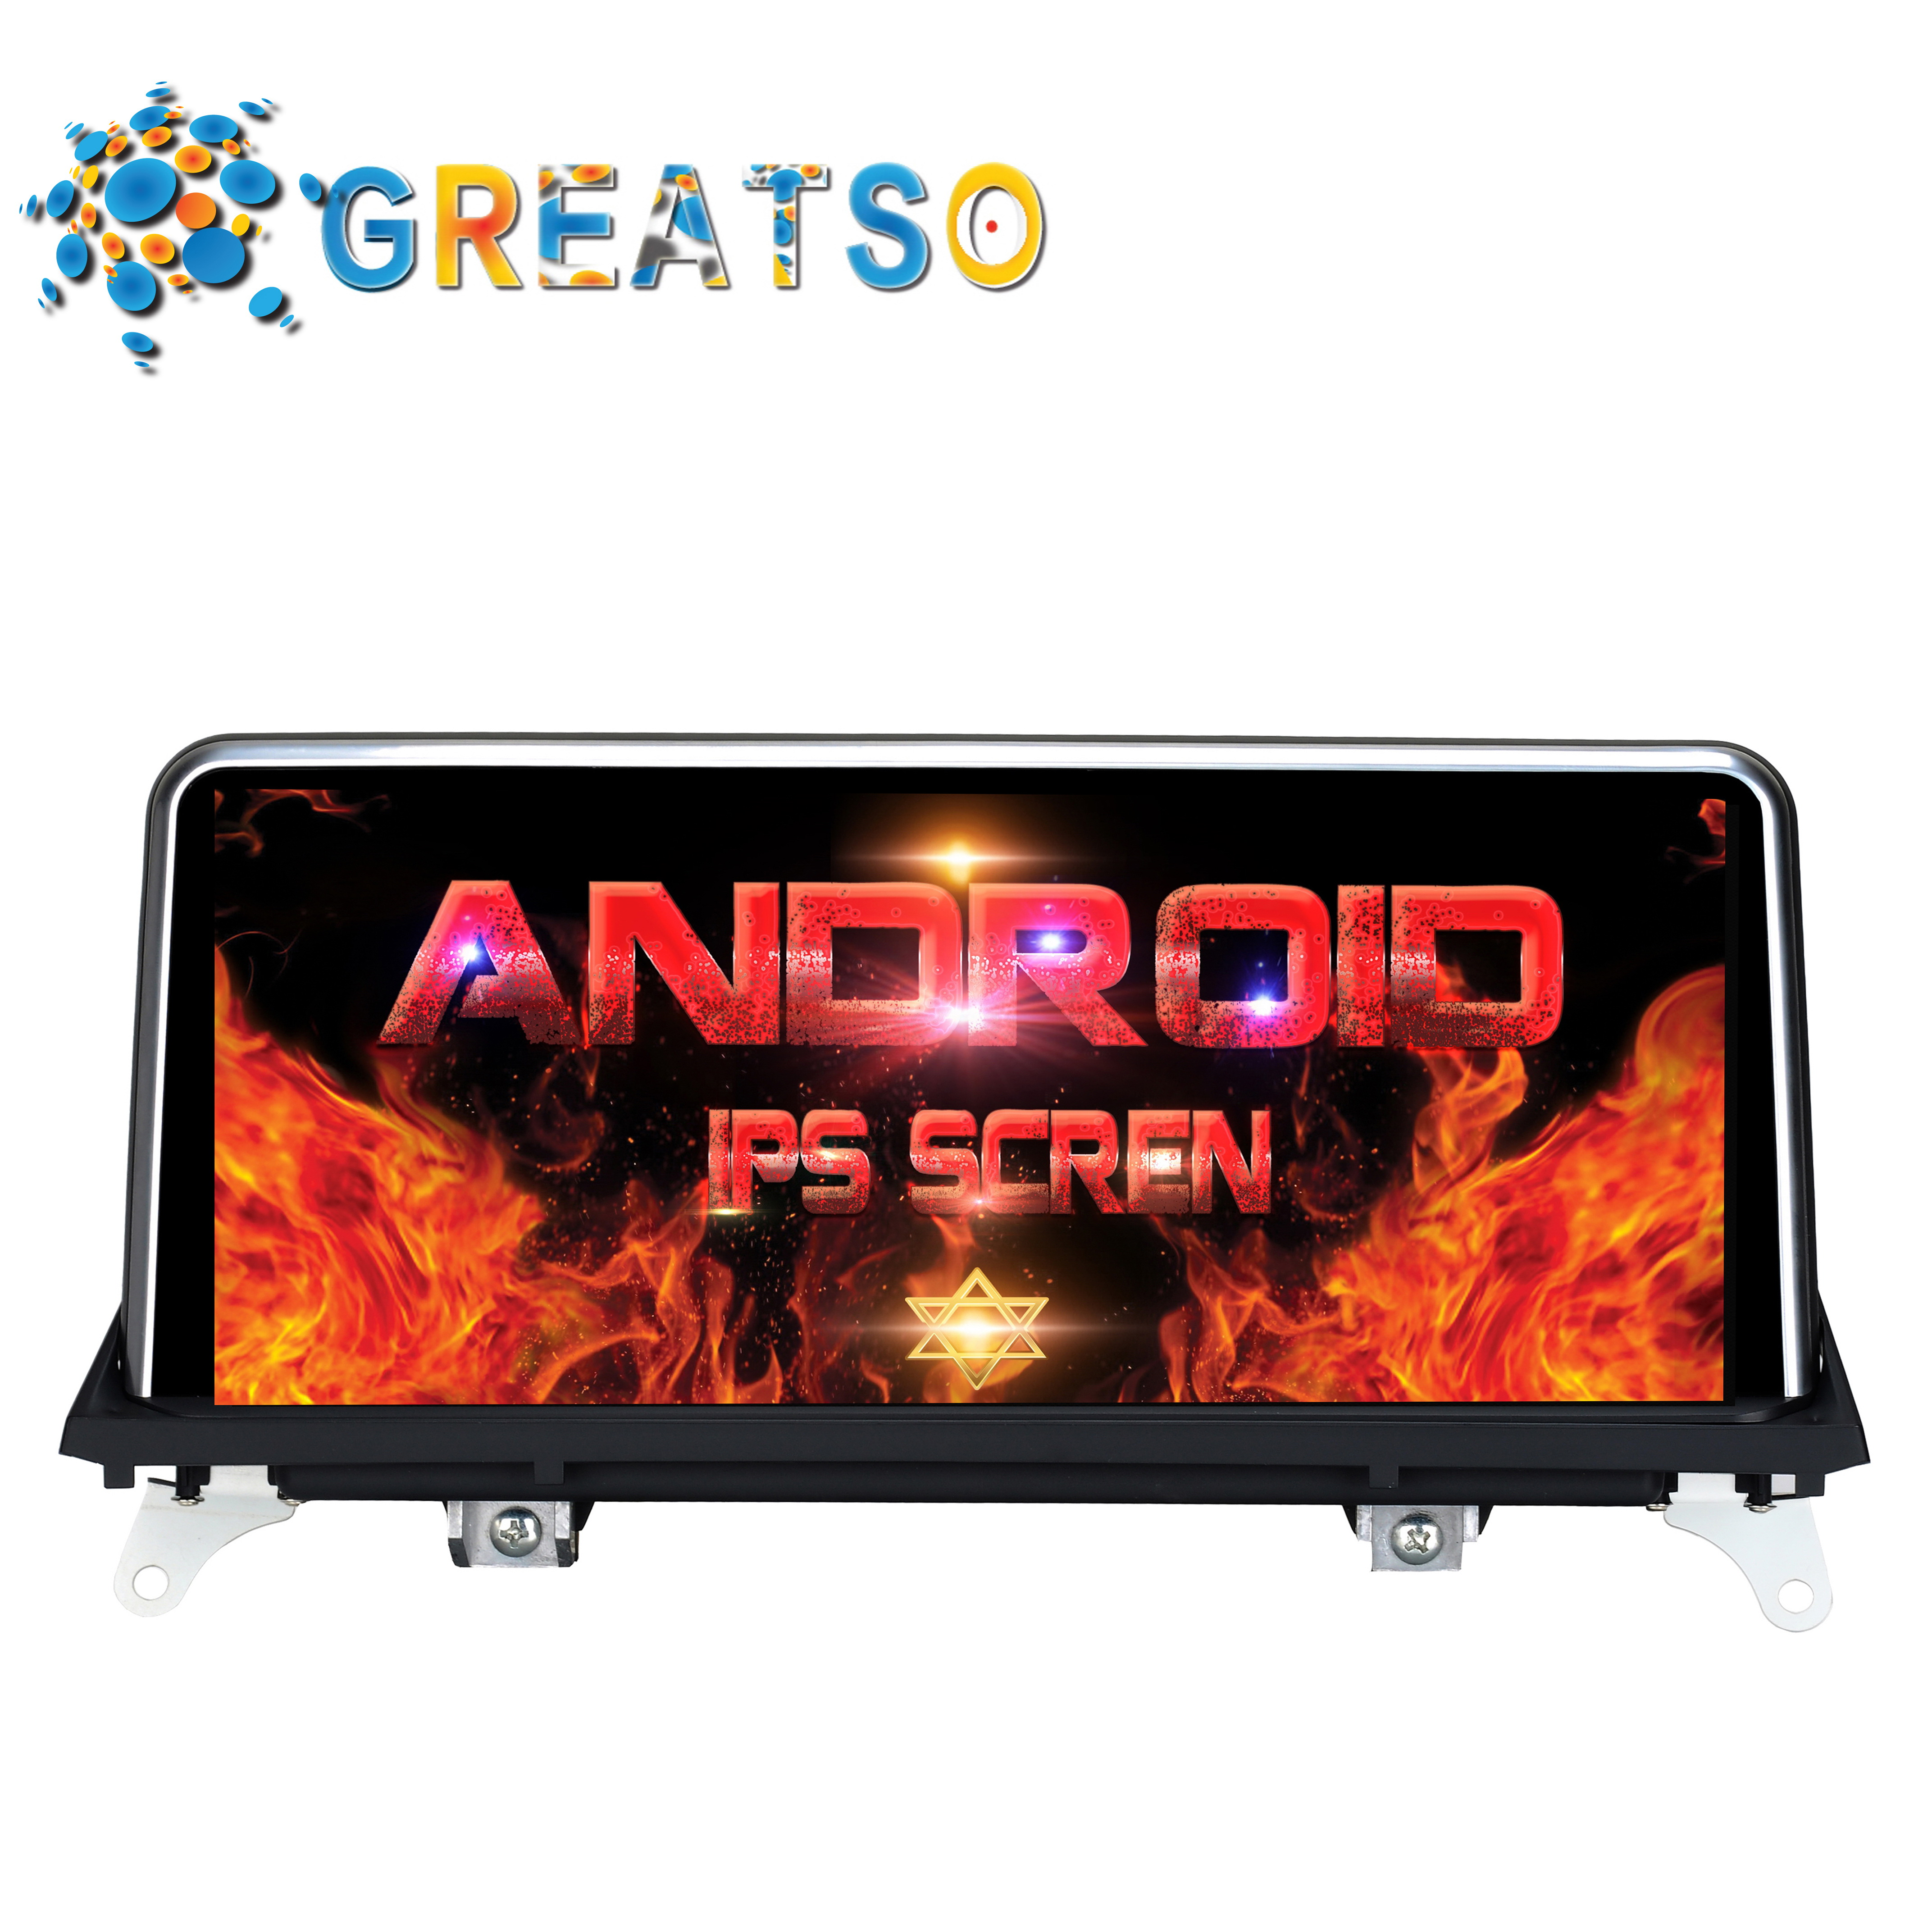 Android 7.1.1 CAR Audio DVD player FOR BMW X5 E70 FOR BMW X6 E71 gps car Multimedia head device unit receiver car monitor Screen-in Car Multimedia Player from Automobiles & Motorcycles    1